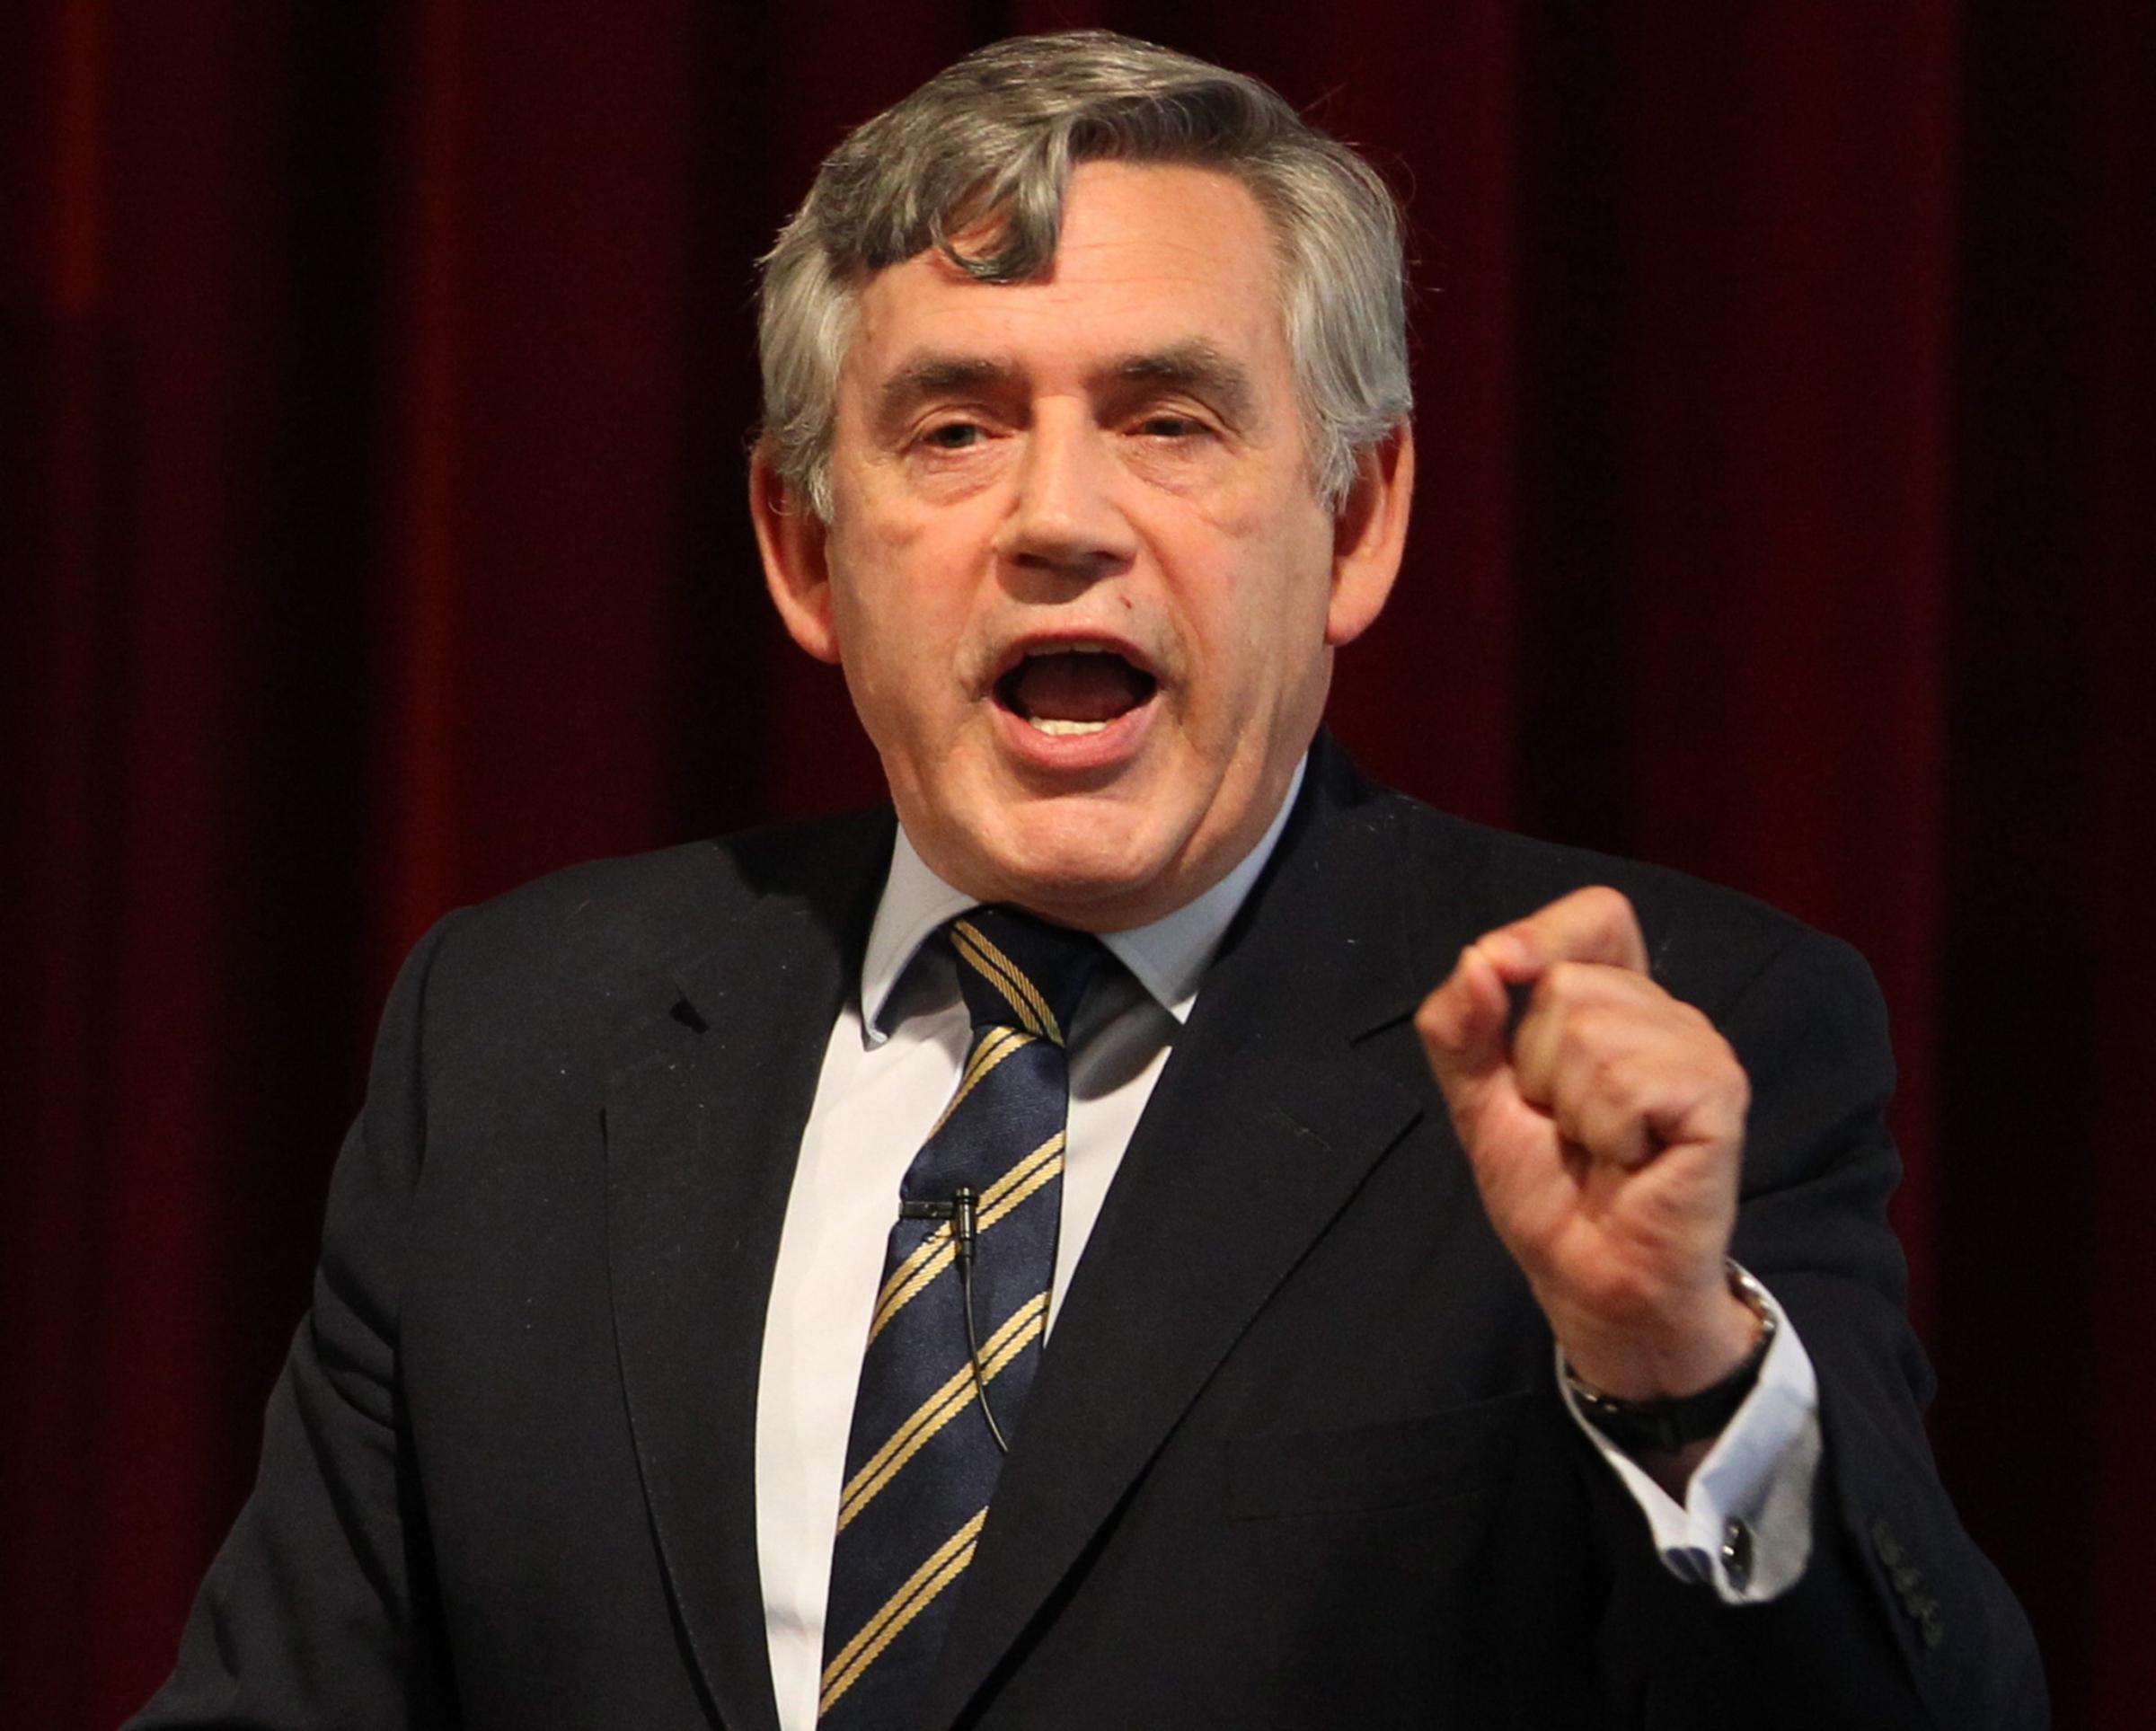 Former prime minister Gordon Brown continues calls for UK status quo